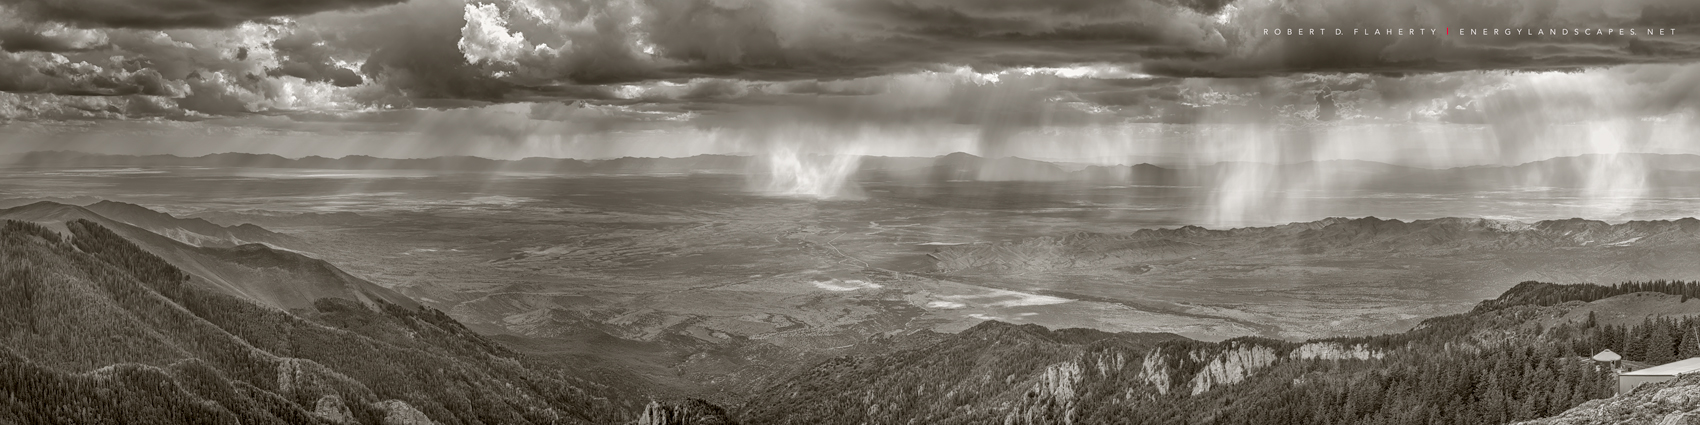 Topside Gallery, Three Rivers, Sierra Blanca, Central Mountains, New Mexico, Ruidoso New Mexico, Monsoon, high resolution, composite panorama, medium format, Summer, June, Tularosa Basin, fine art, fi, photo